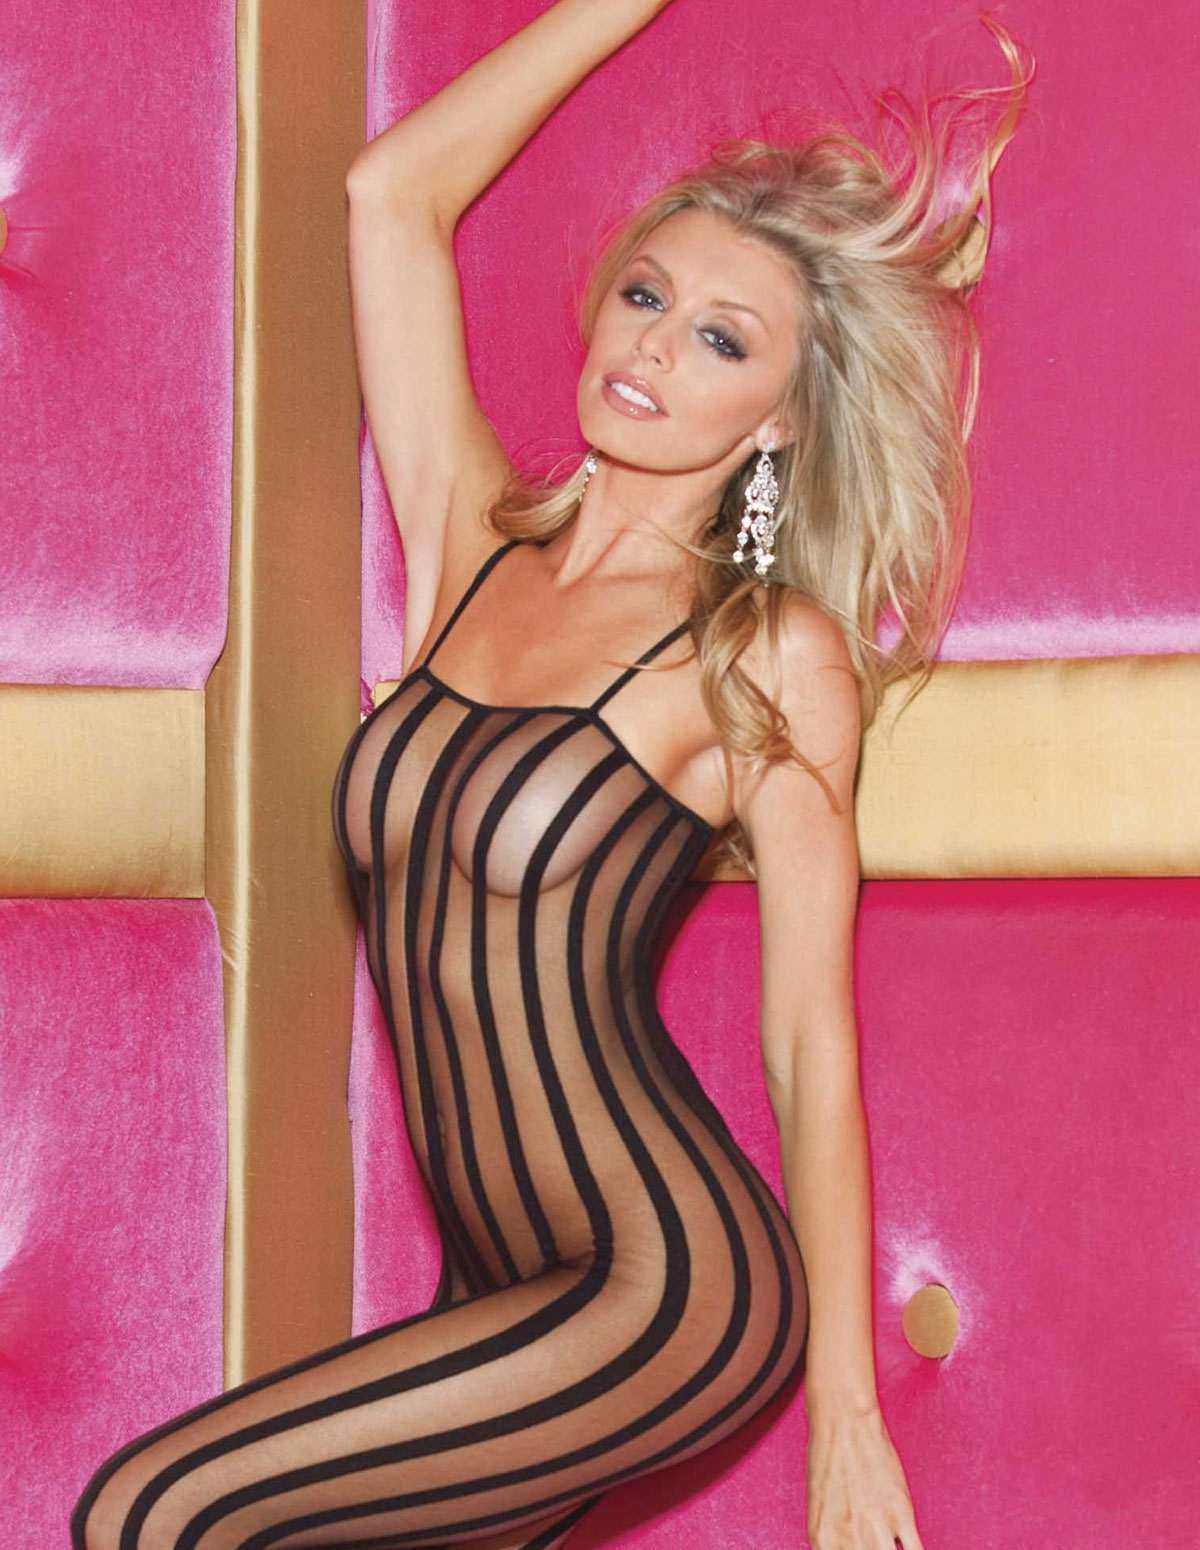 Sheer Stripe Bodystocking